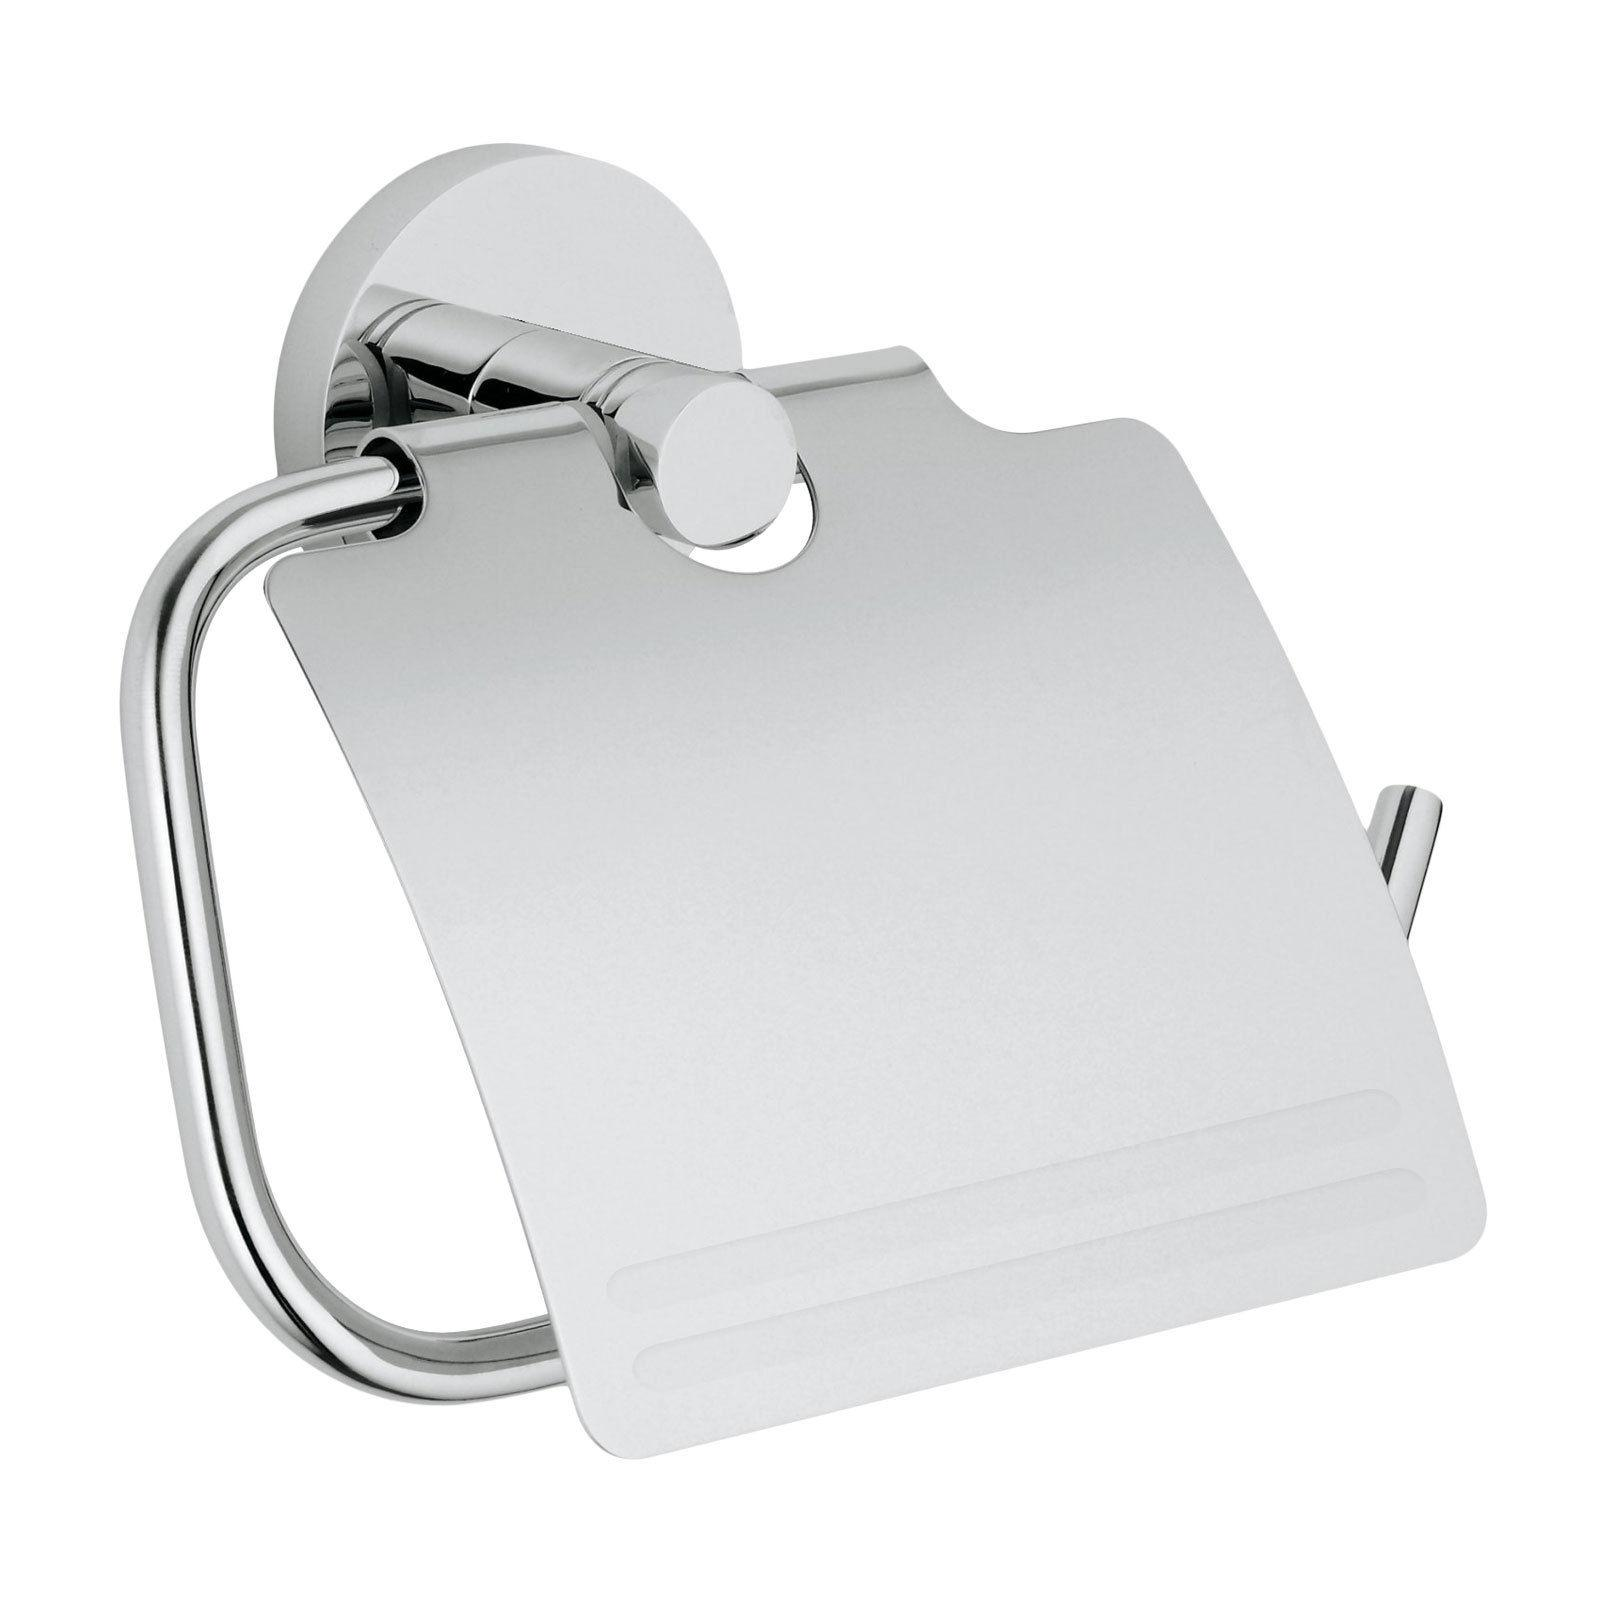 Modern Chrome Euro Toilet Paper Holder with Cover Bath Acces